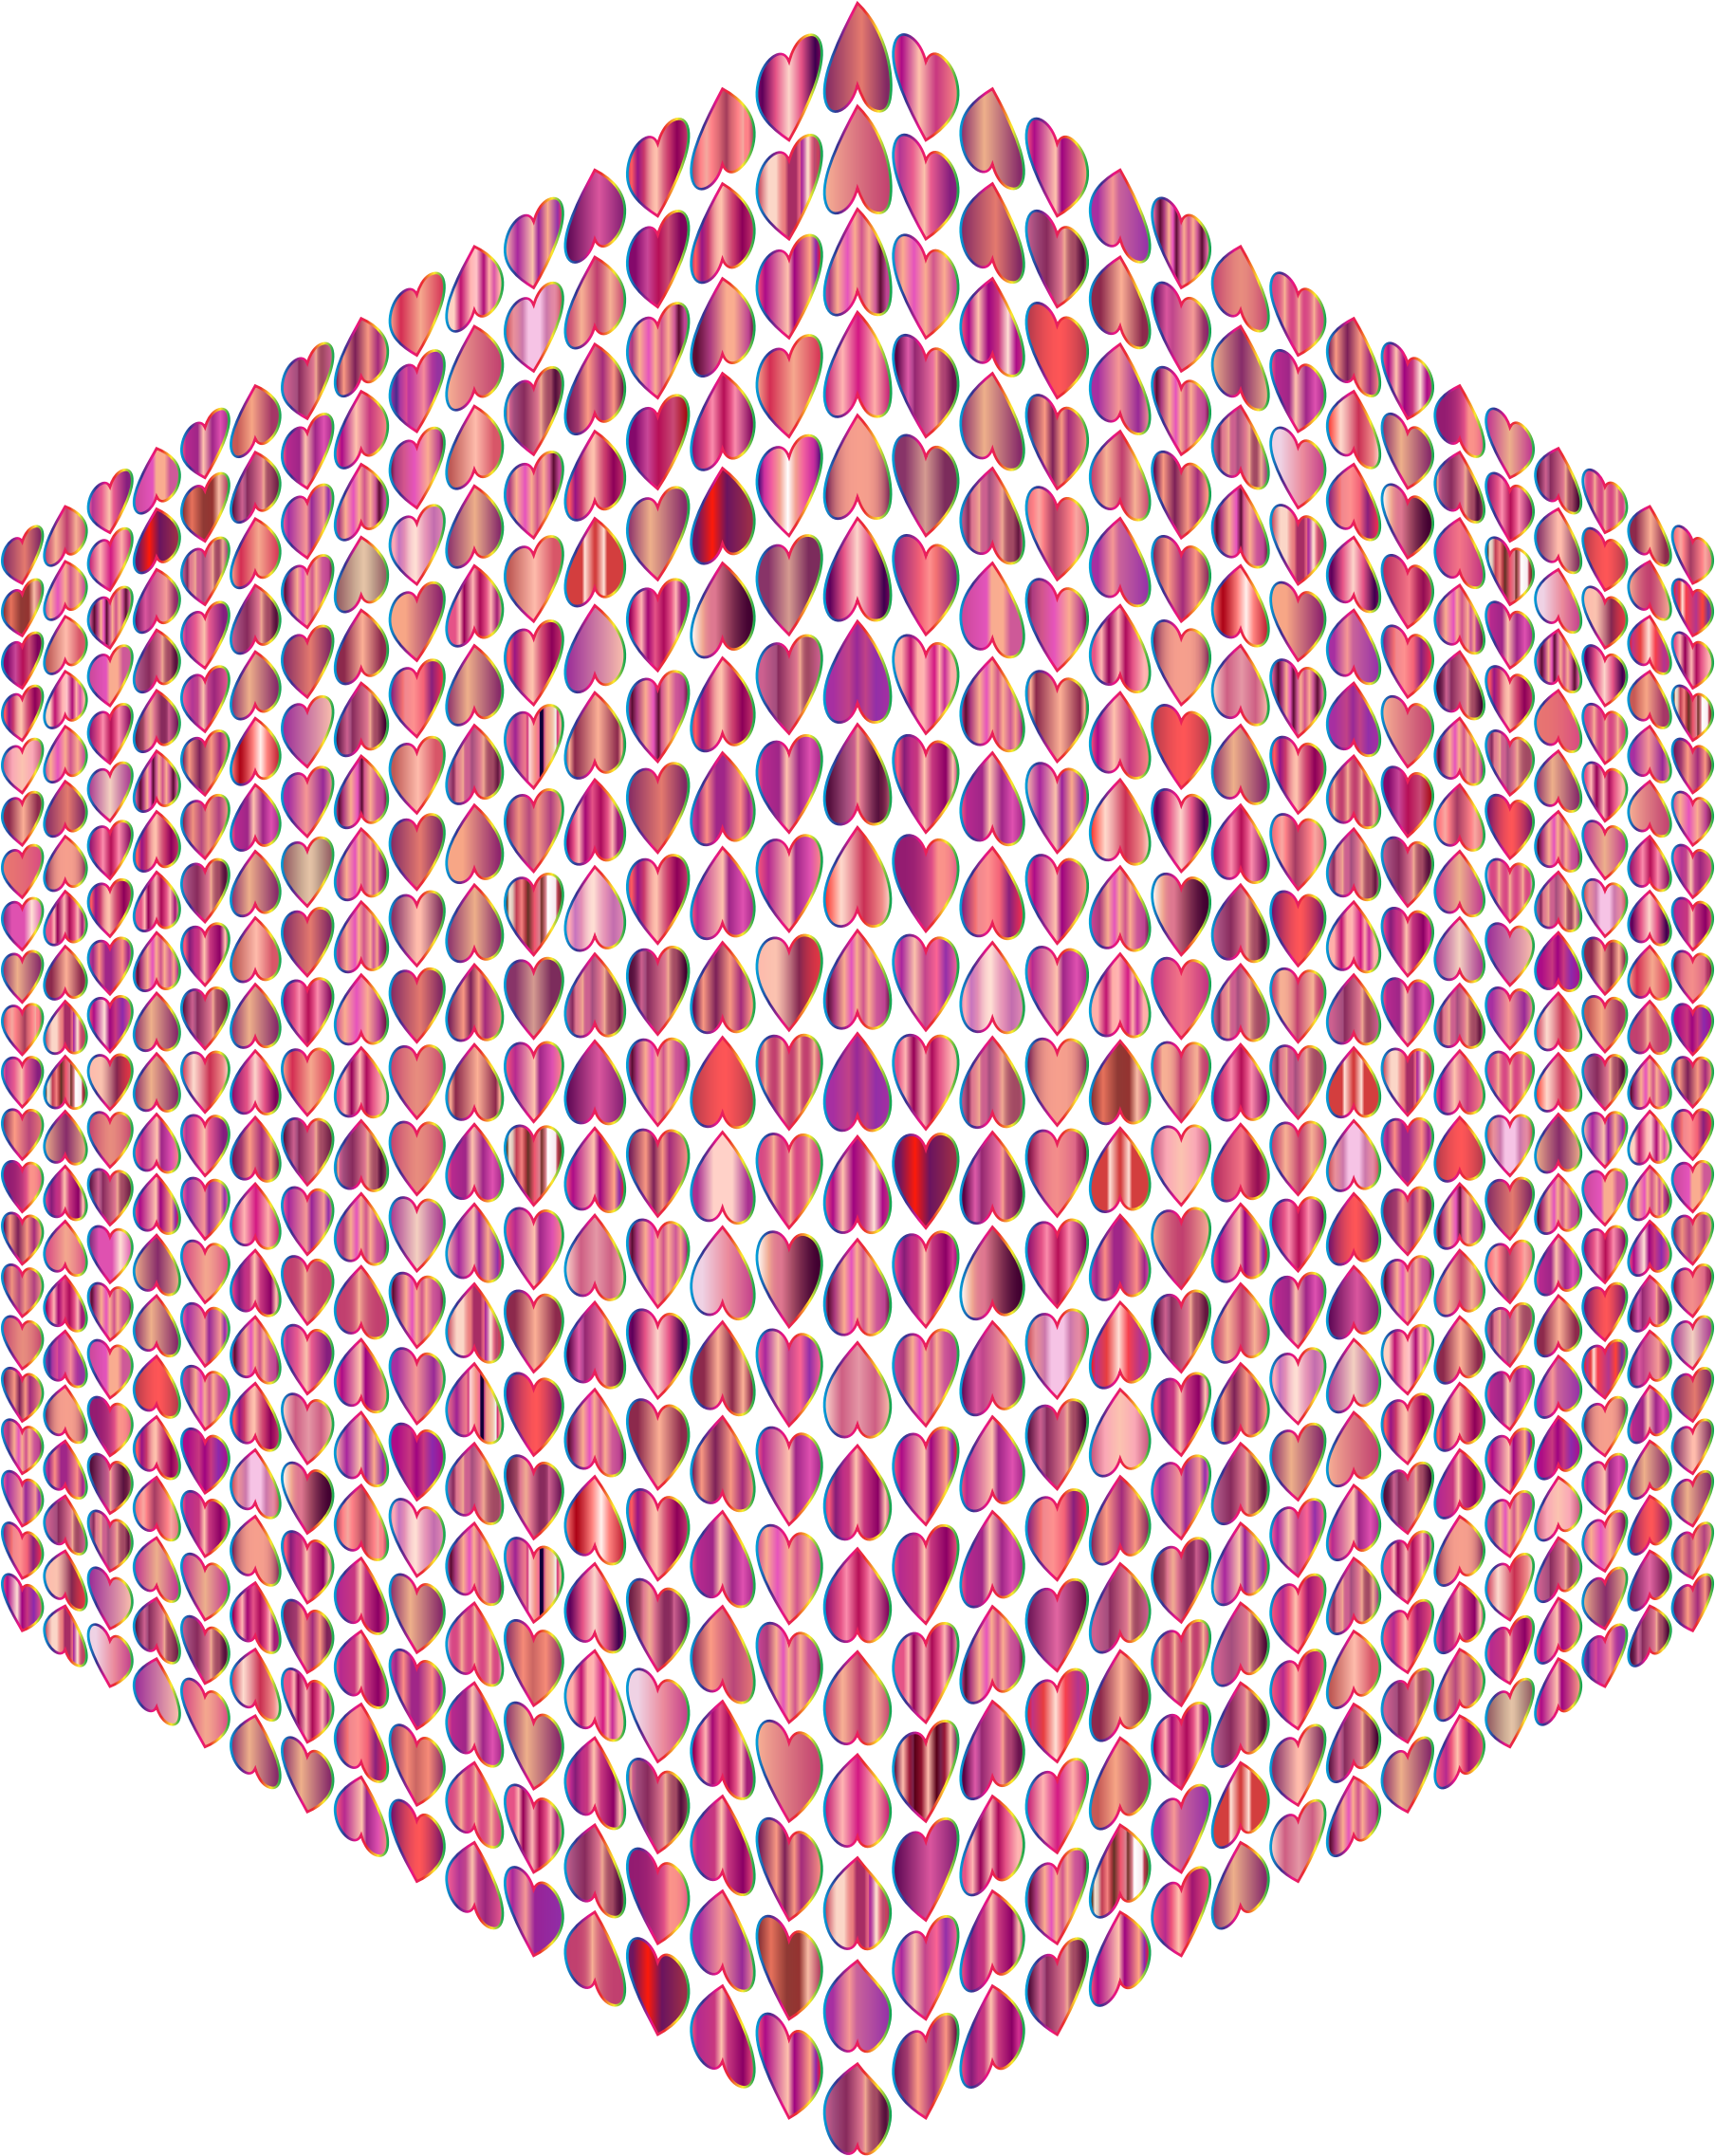 Prismatic Alternating Hearts Pattern Cube No Background by GDJ